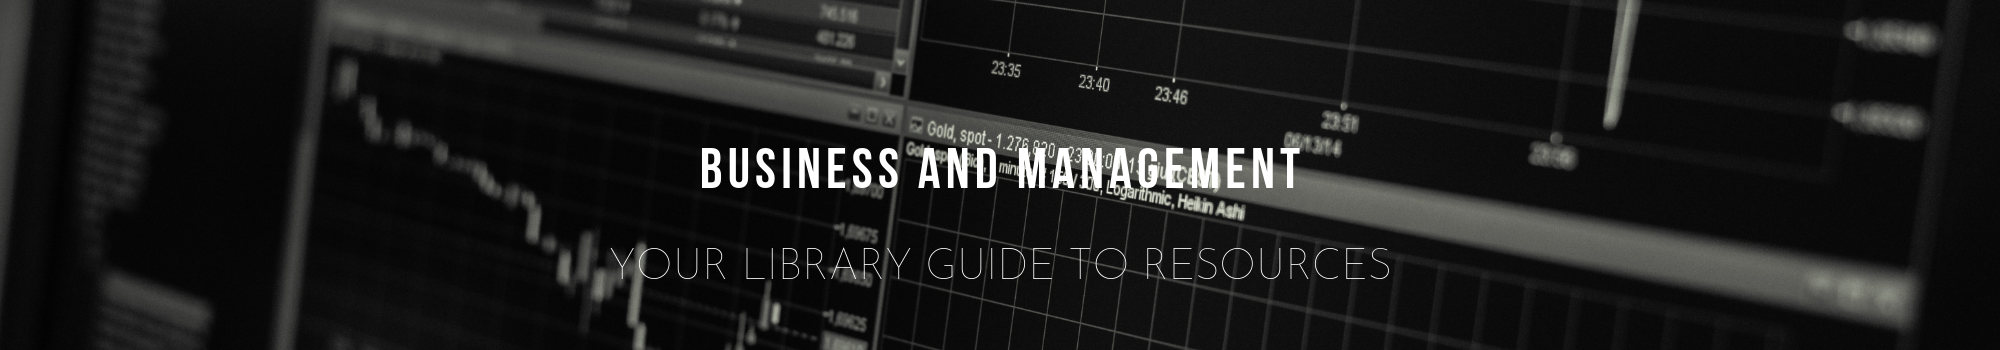 Business and Management - Your library guide to resources